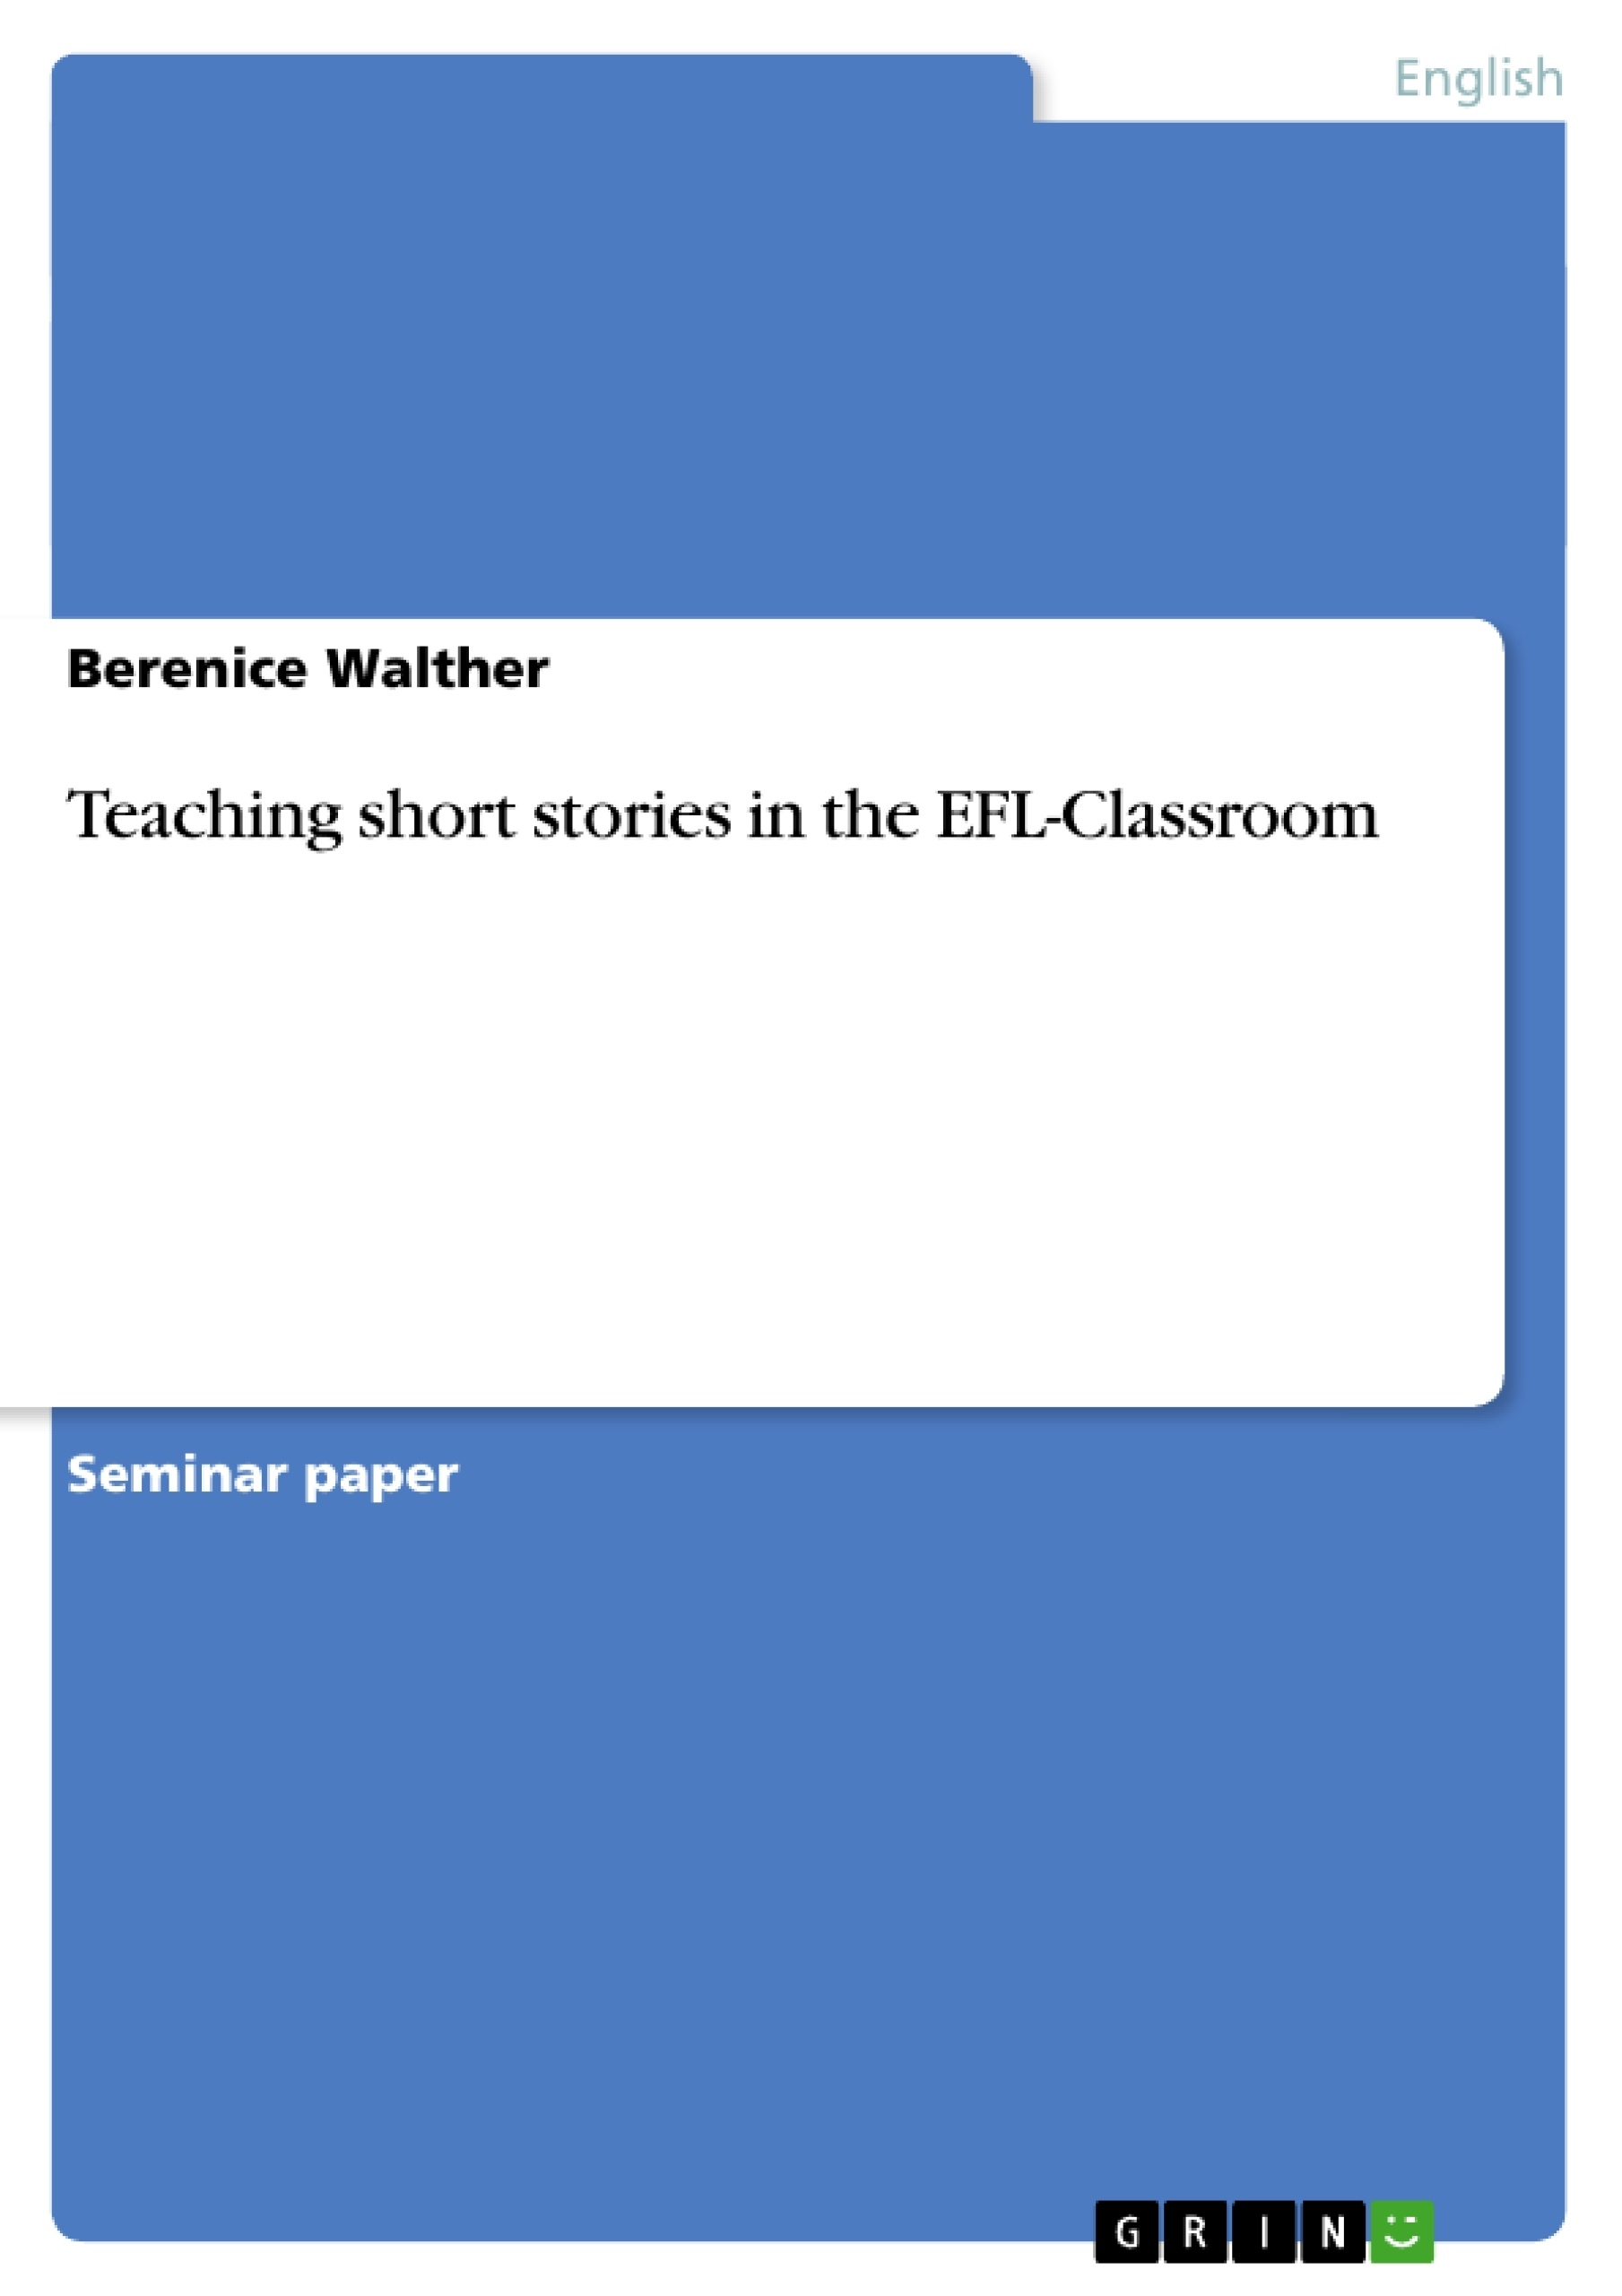 Title: Teaching short stories in the EFL-Classroom